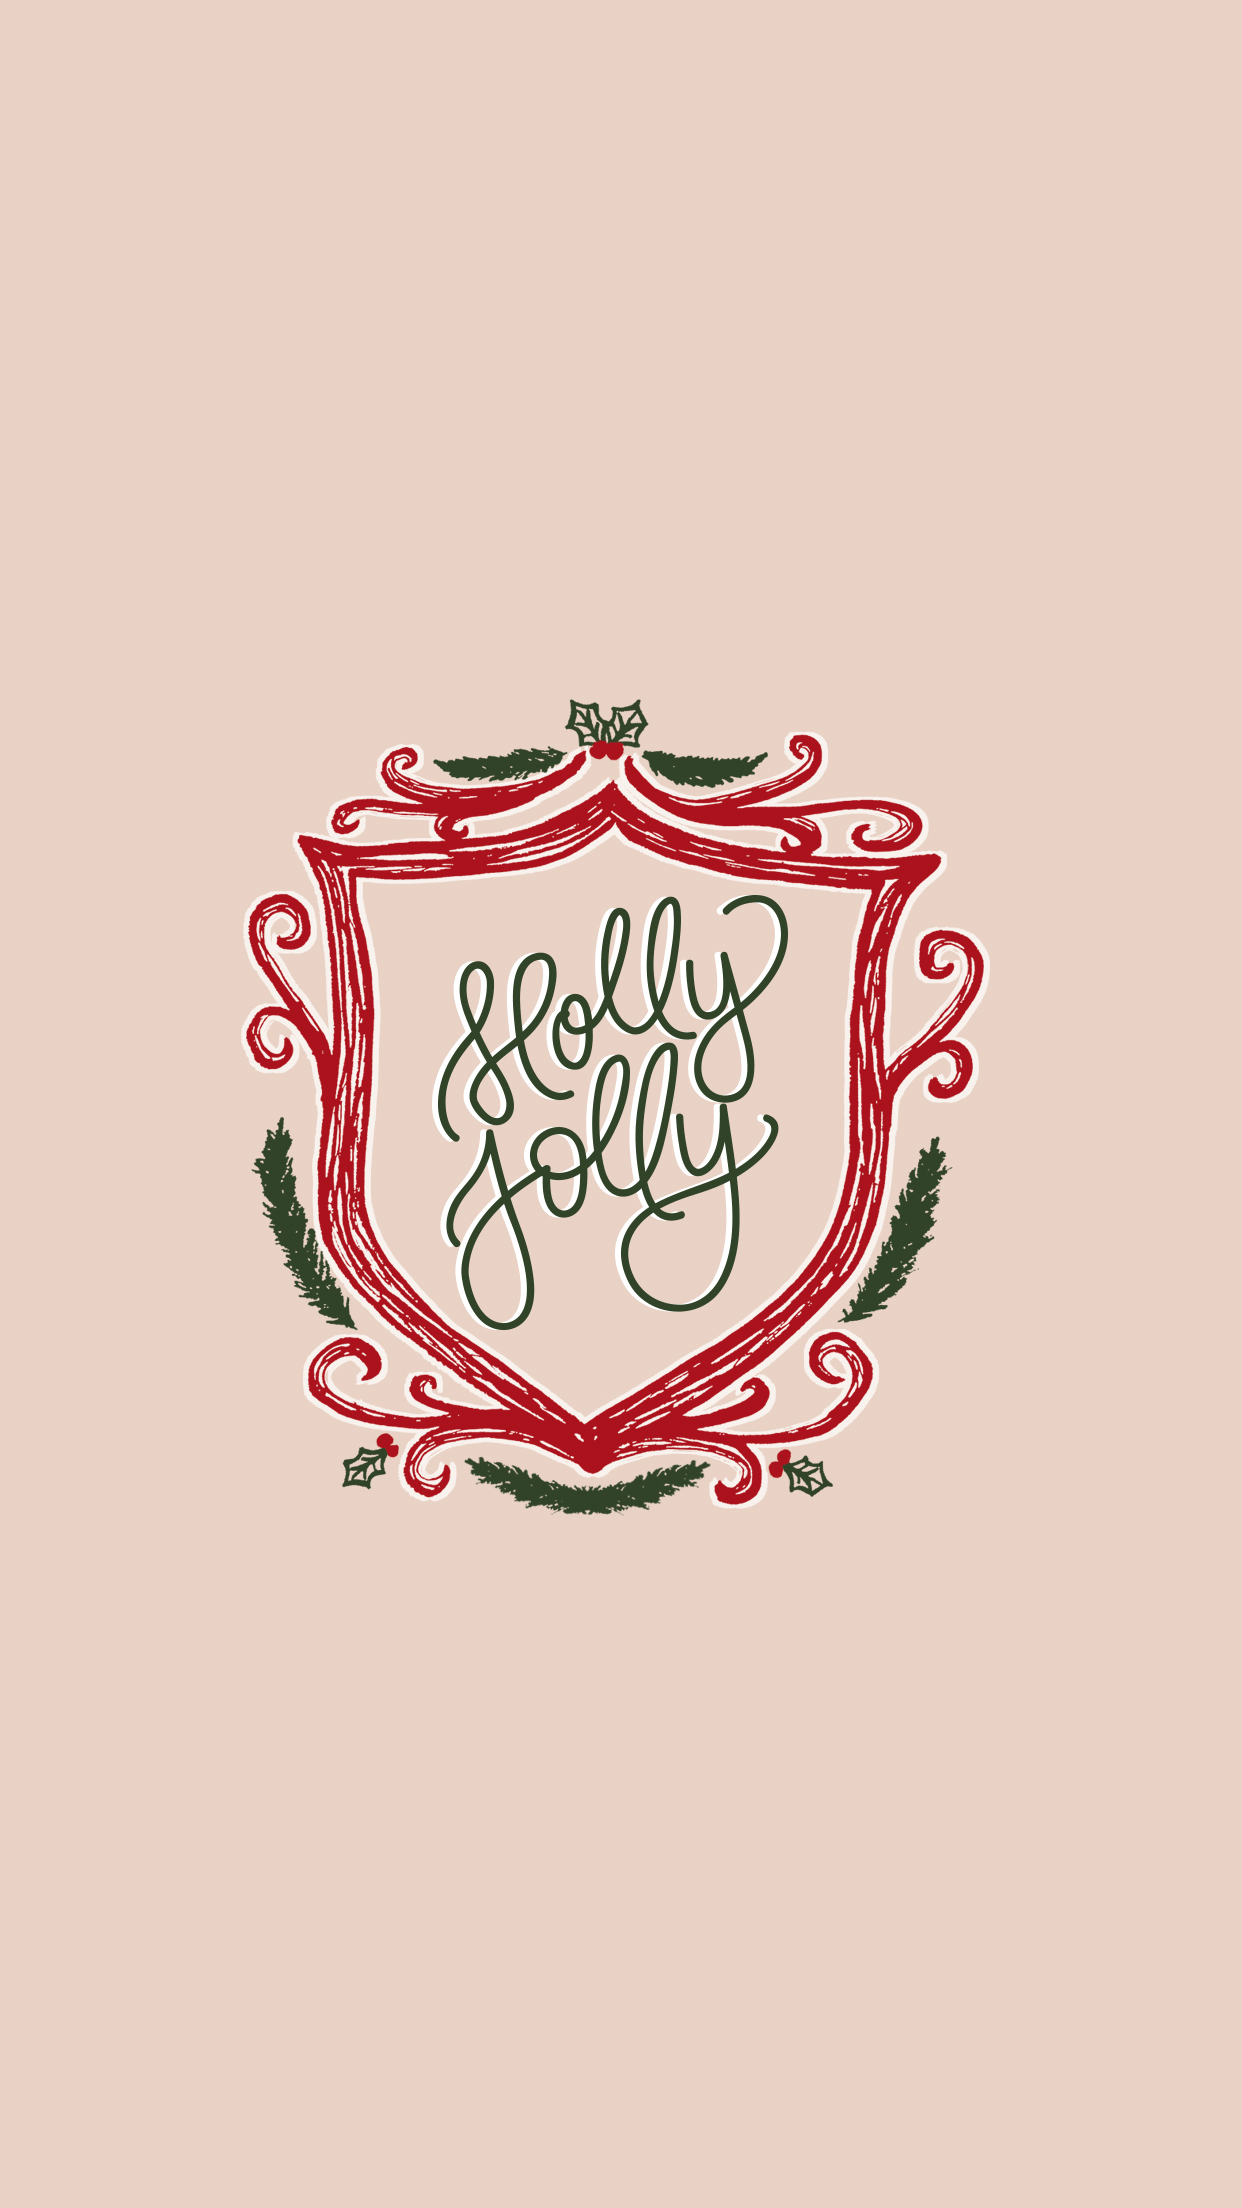 Styldbygrace_December_Wallpaper_Mobile